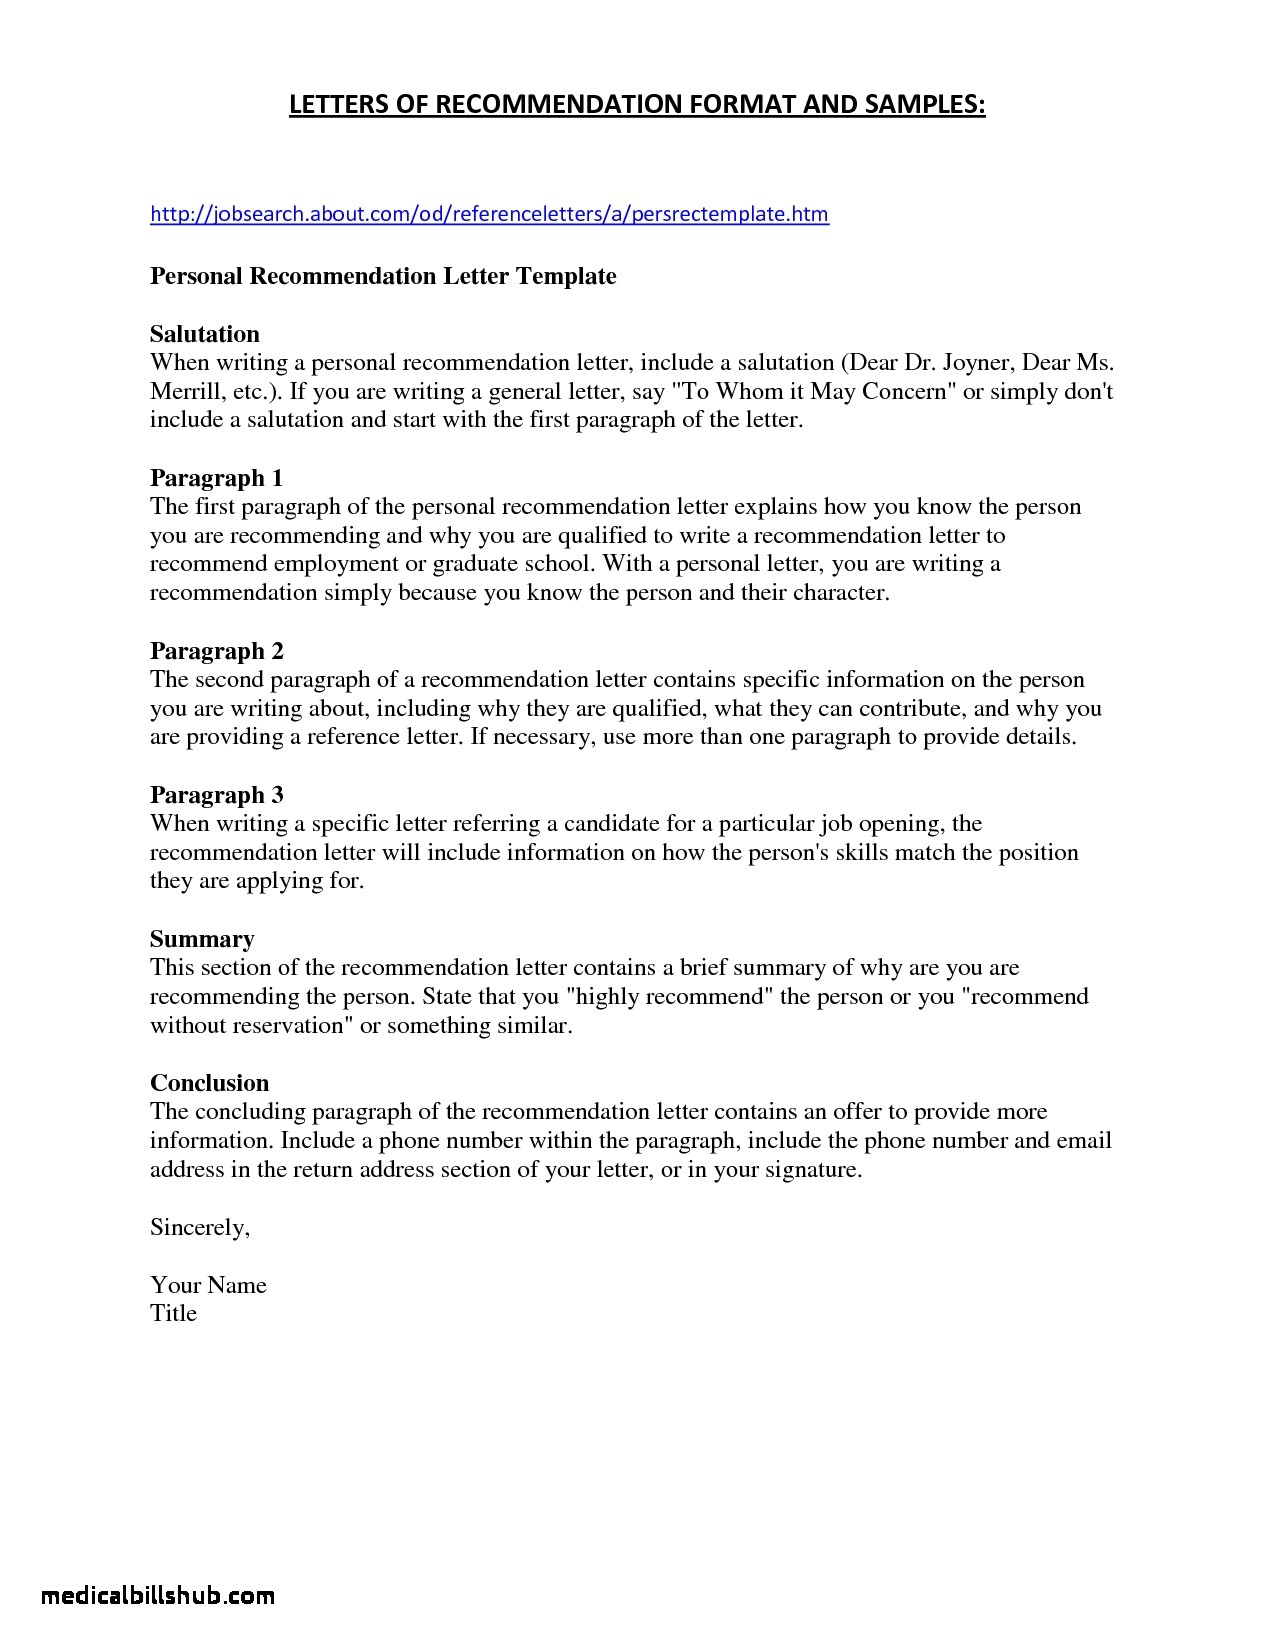 School Reference Letter Template - Samples Job Re Mendation Letters by Employers Save Letter Re